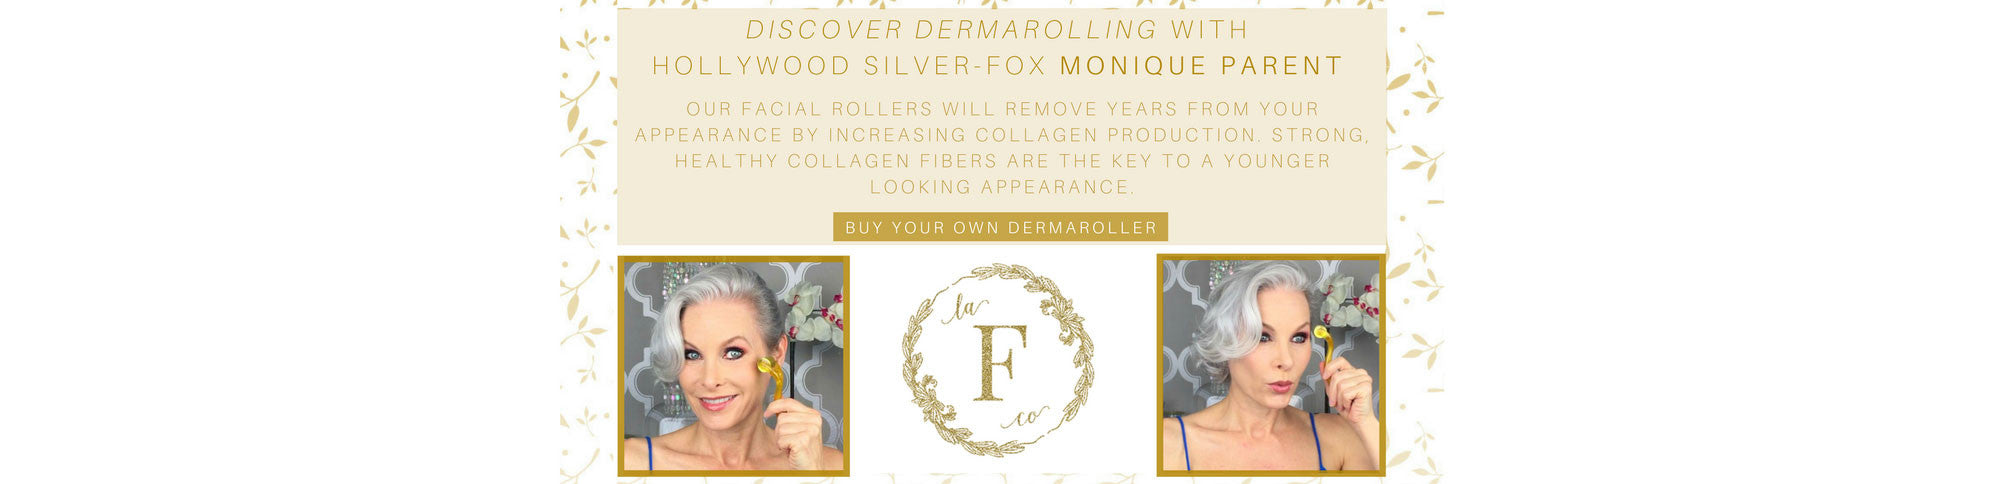 Discover dermarolling with Hollywood Silver-Fox Monique Parent